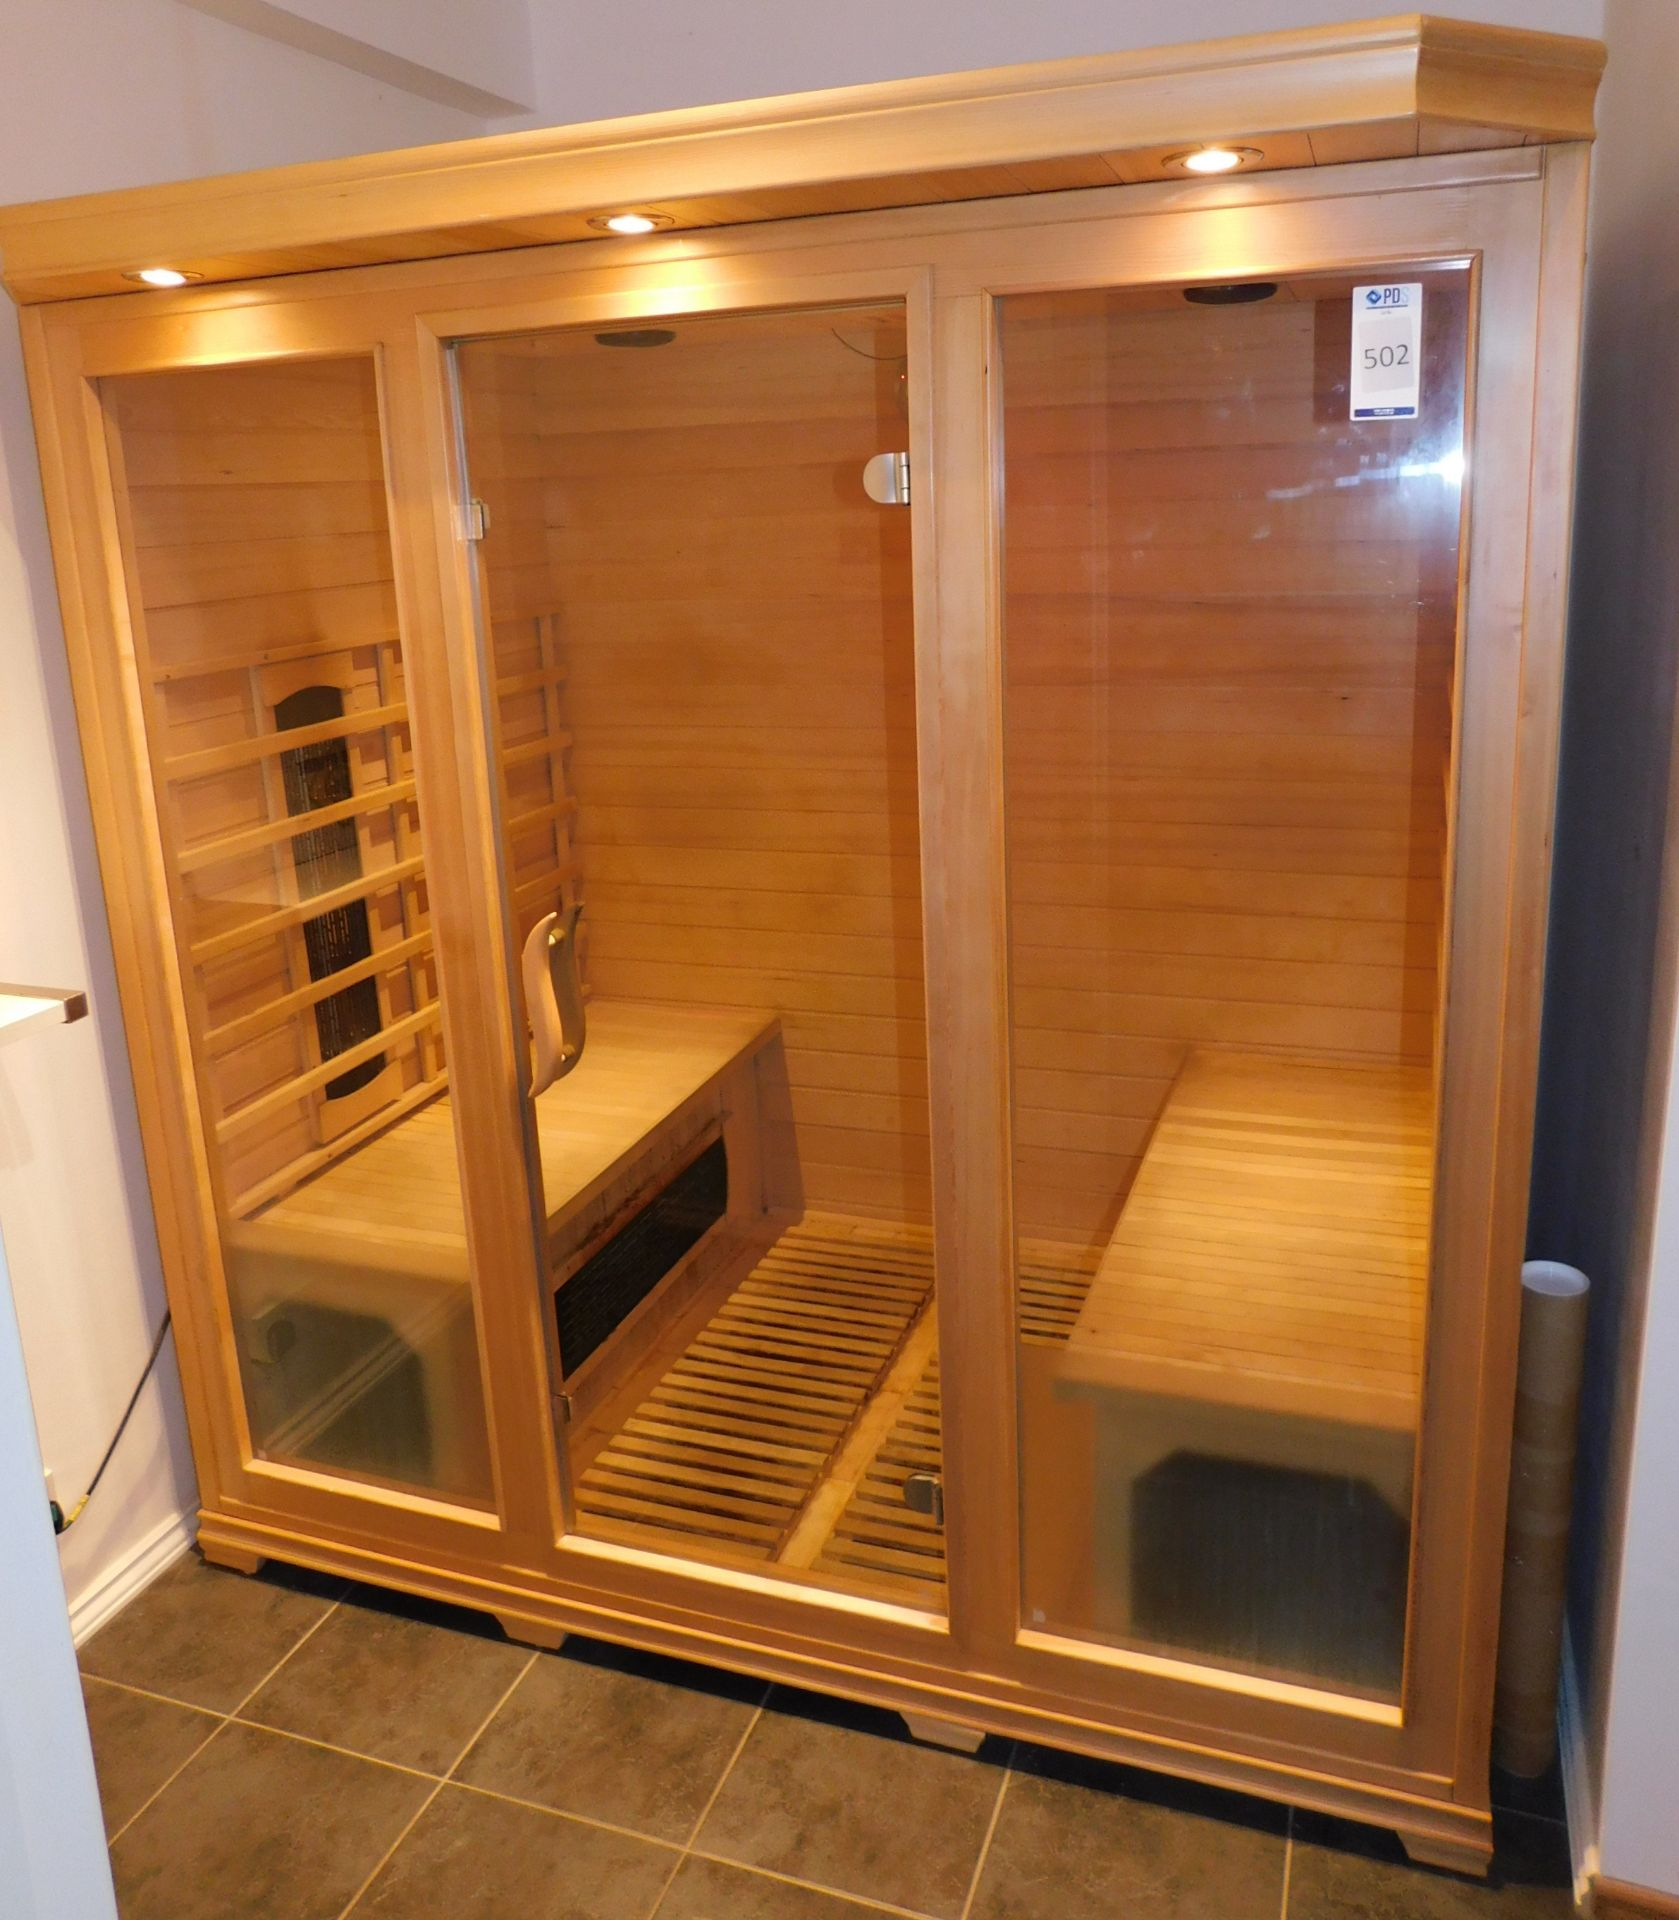 FAR Freestanding Infrared Sauna, W1.8m x H1.9m x D1.2m (Located Corby – See General Notes for - Image 3 of 7